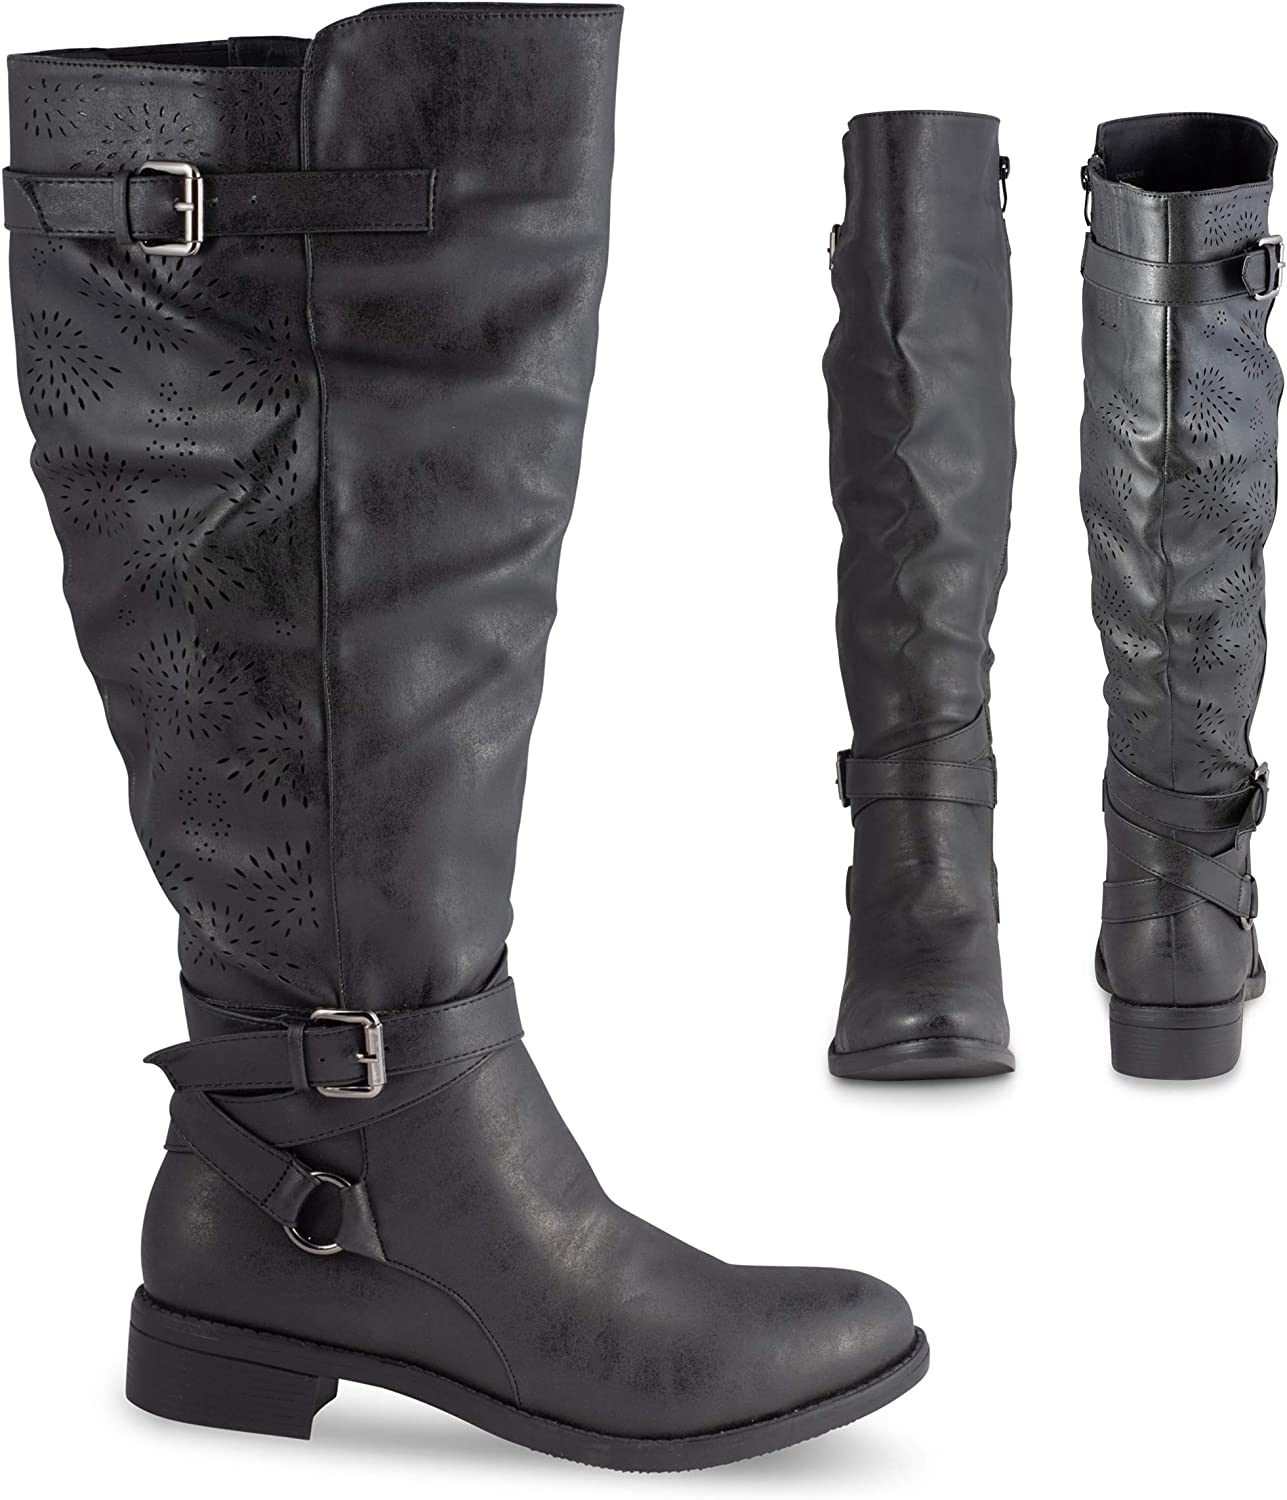 Twisted Chloe Women's Knee High Boots